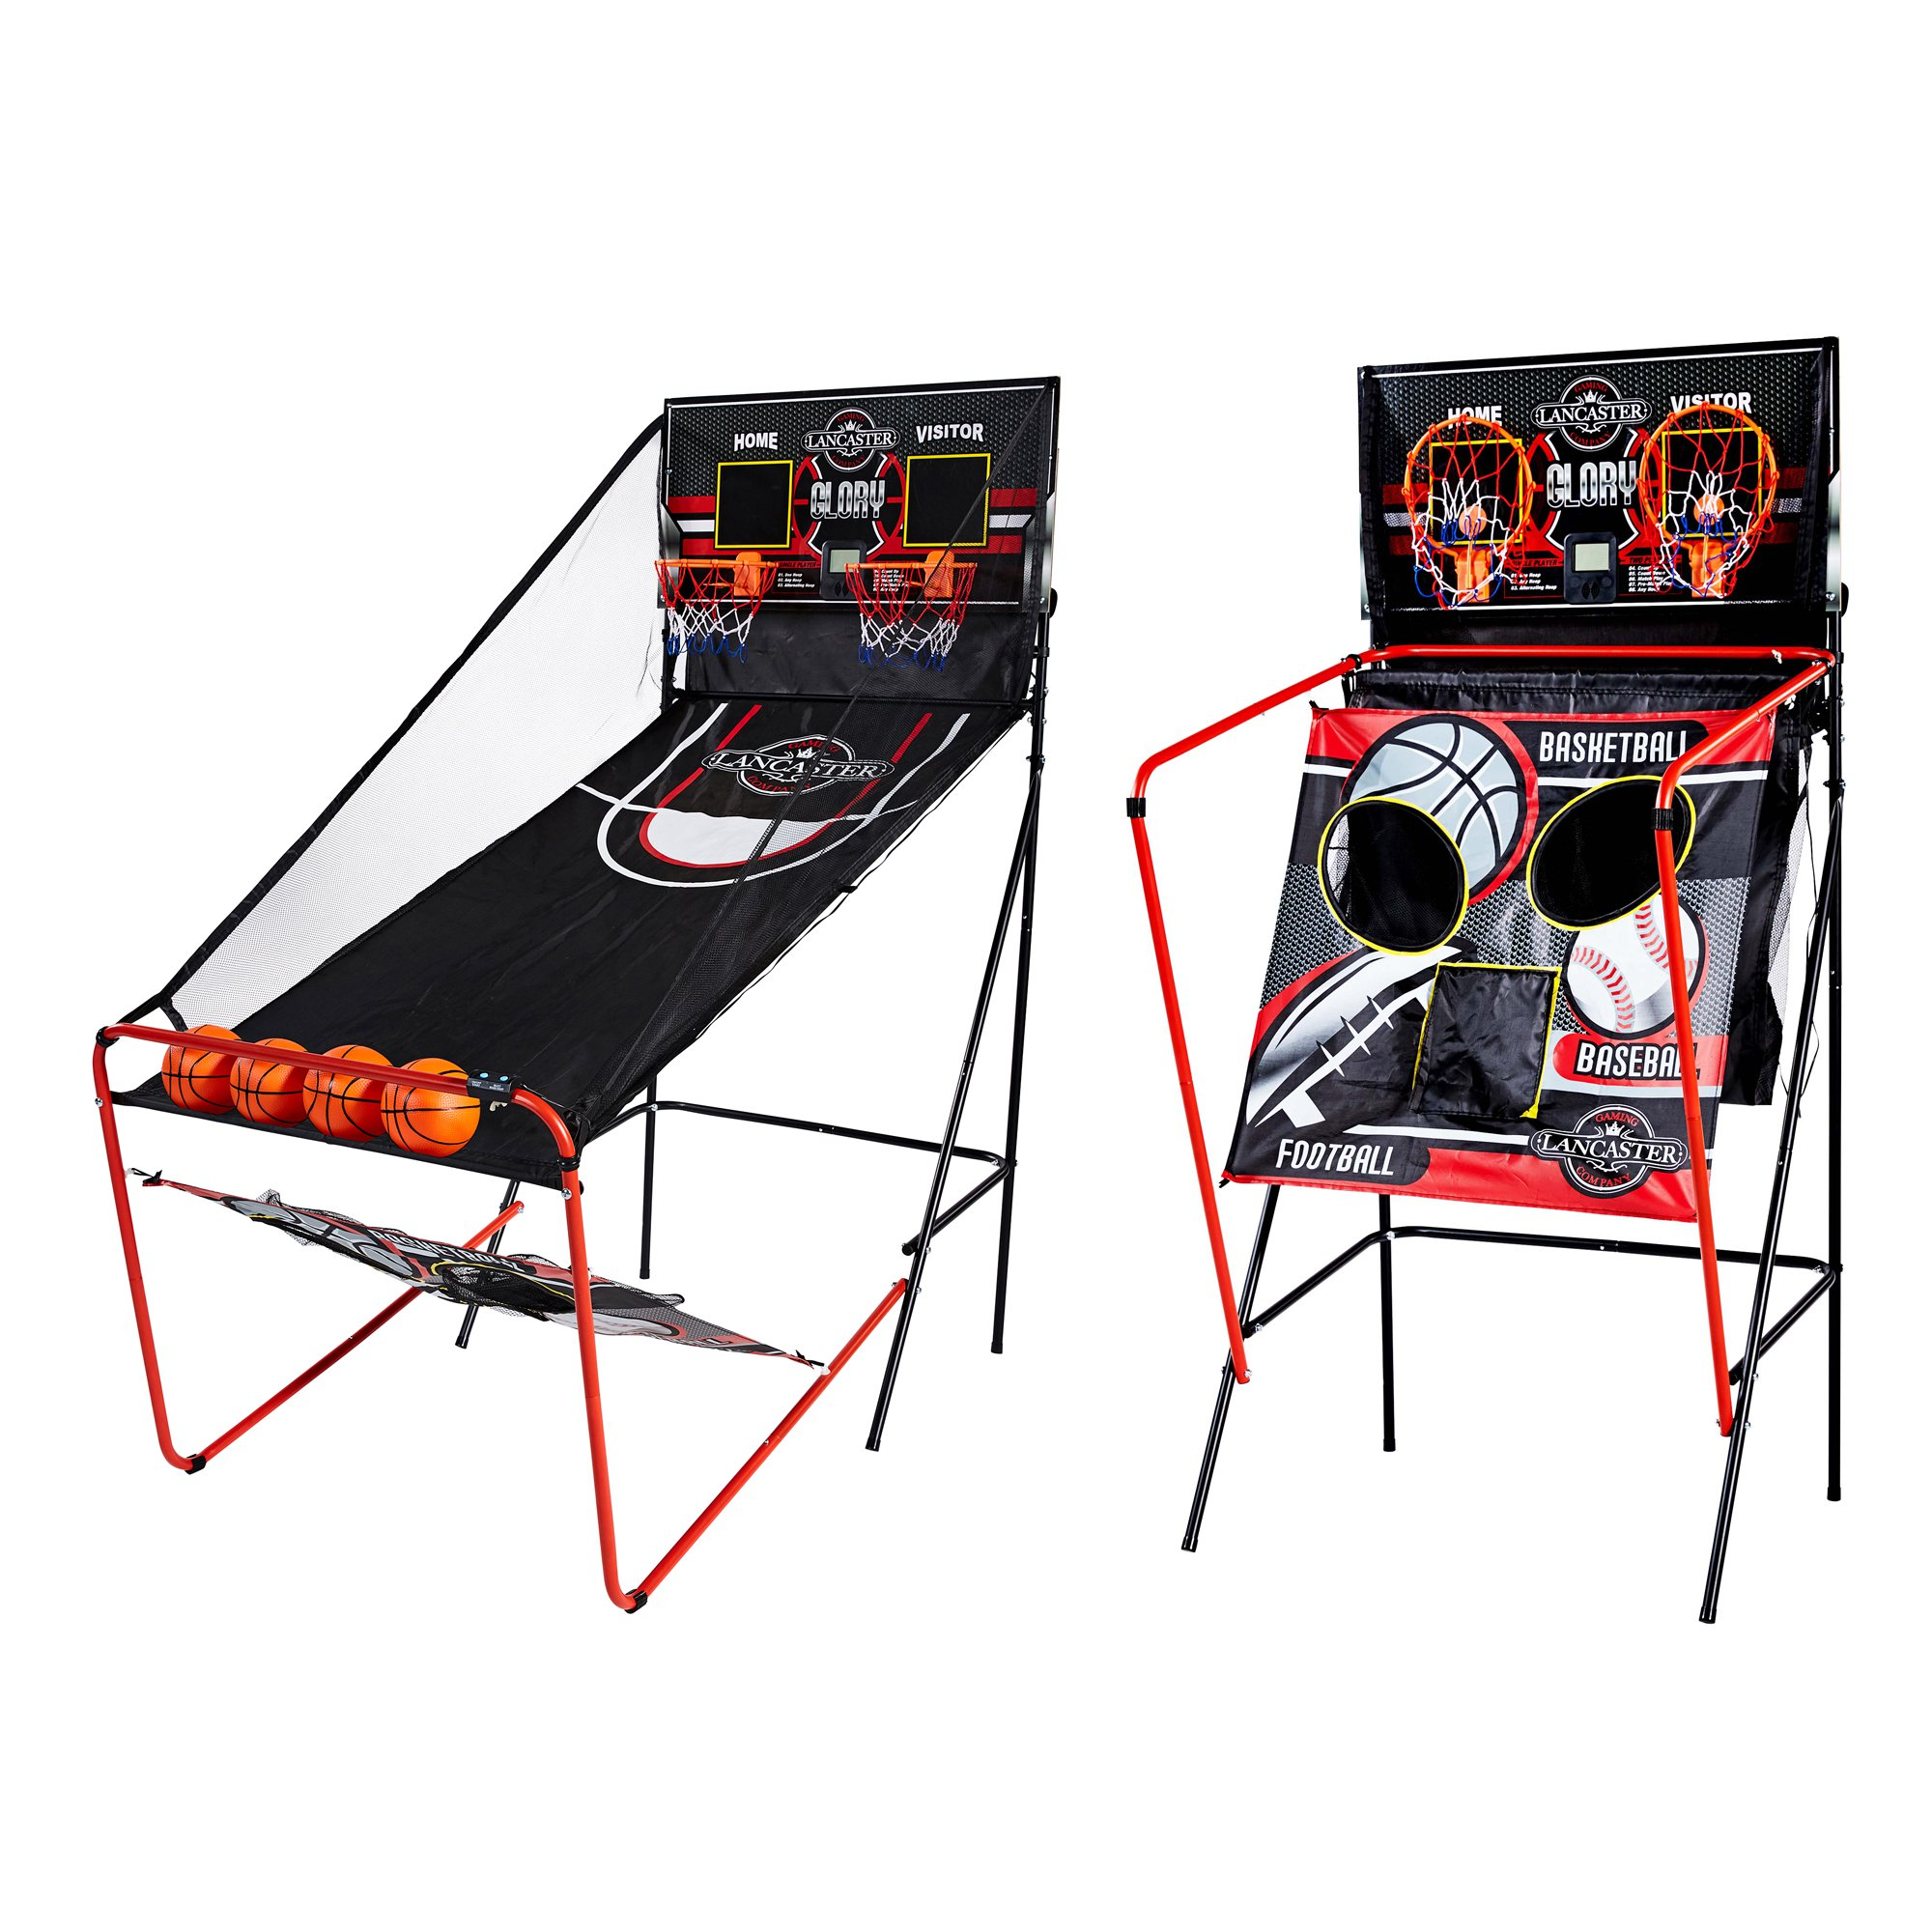 Lancaster 2 Player Electronic Scoreboard Arcade 3 in 1 Basketball Sports Game